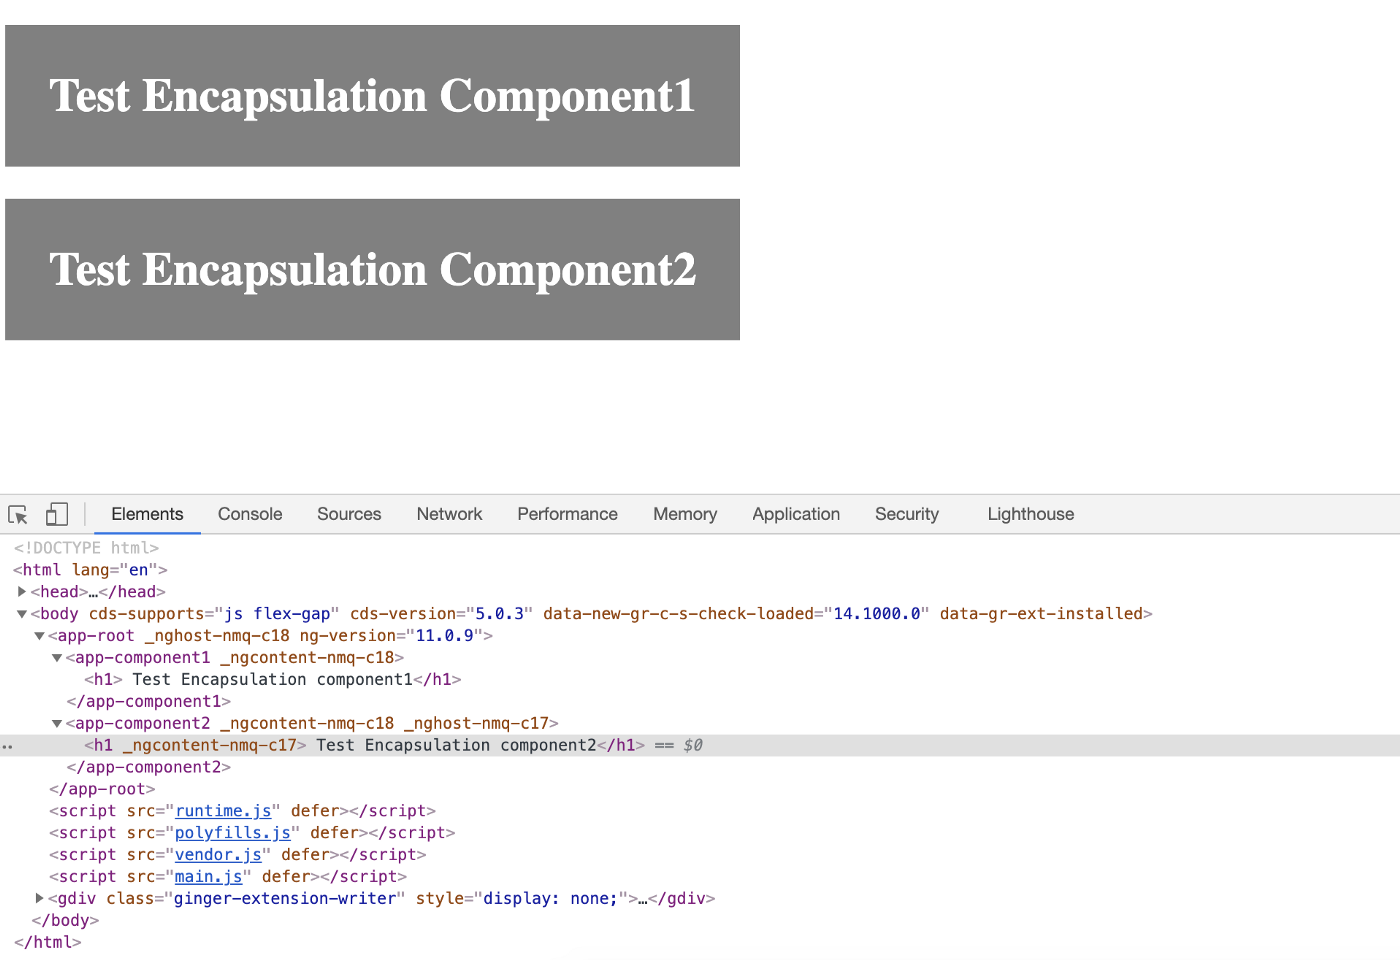 ViewEncapsulation.None, changes will reflect to both component